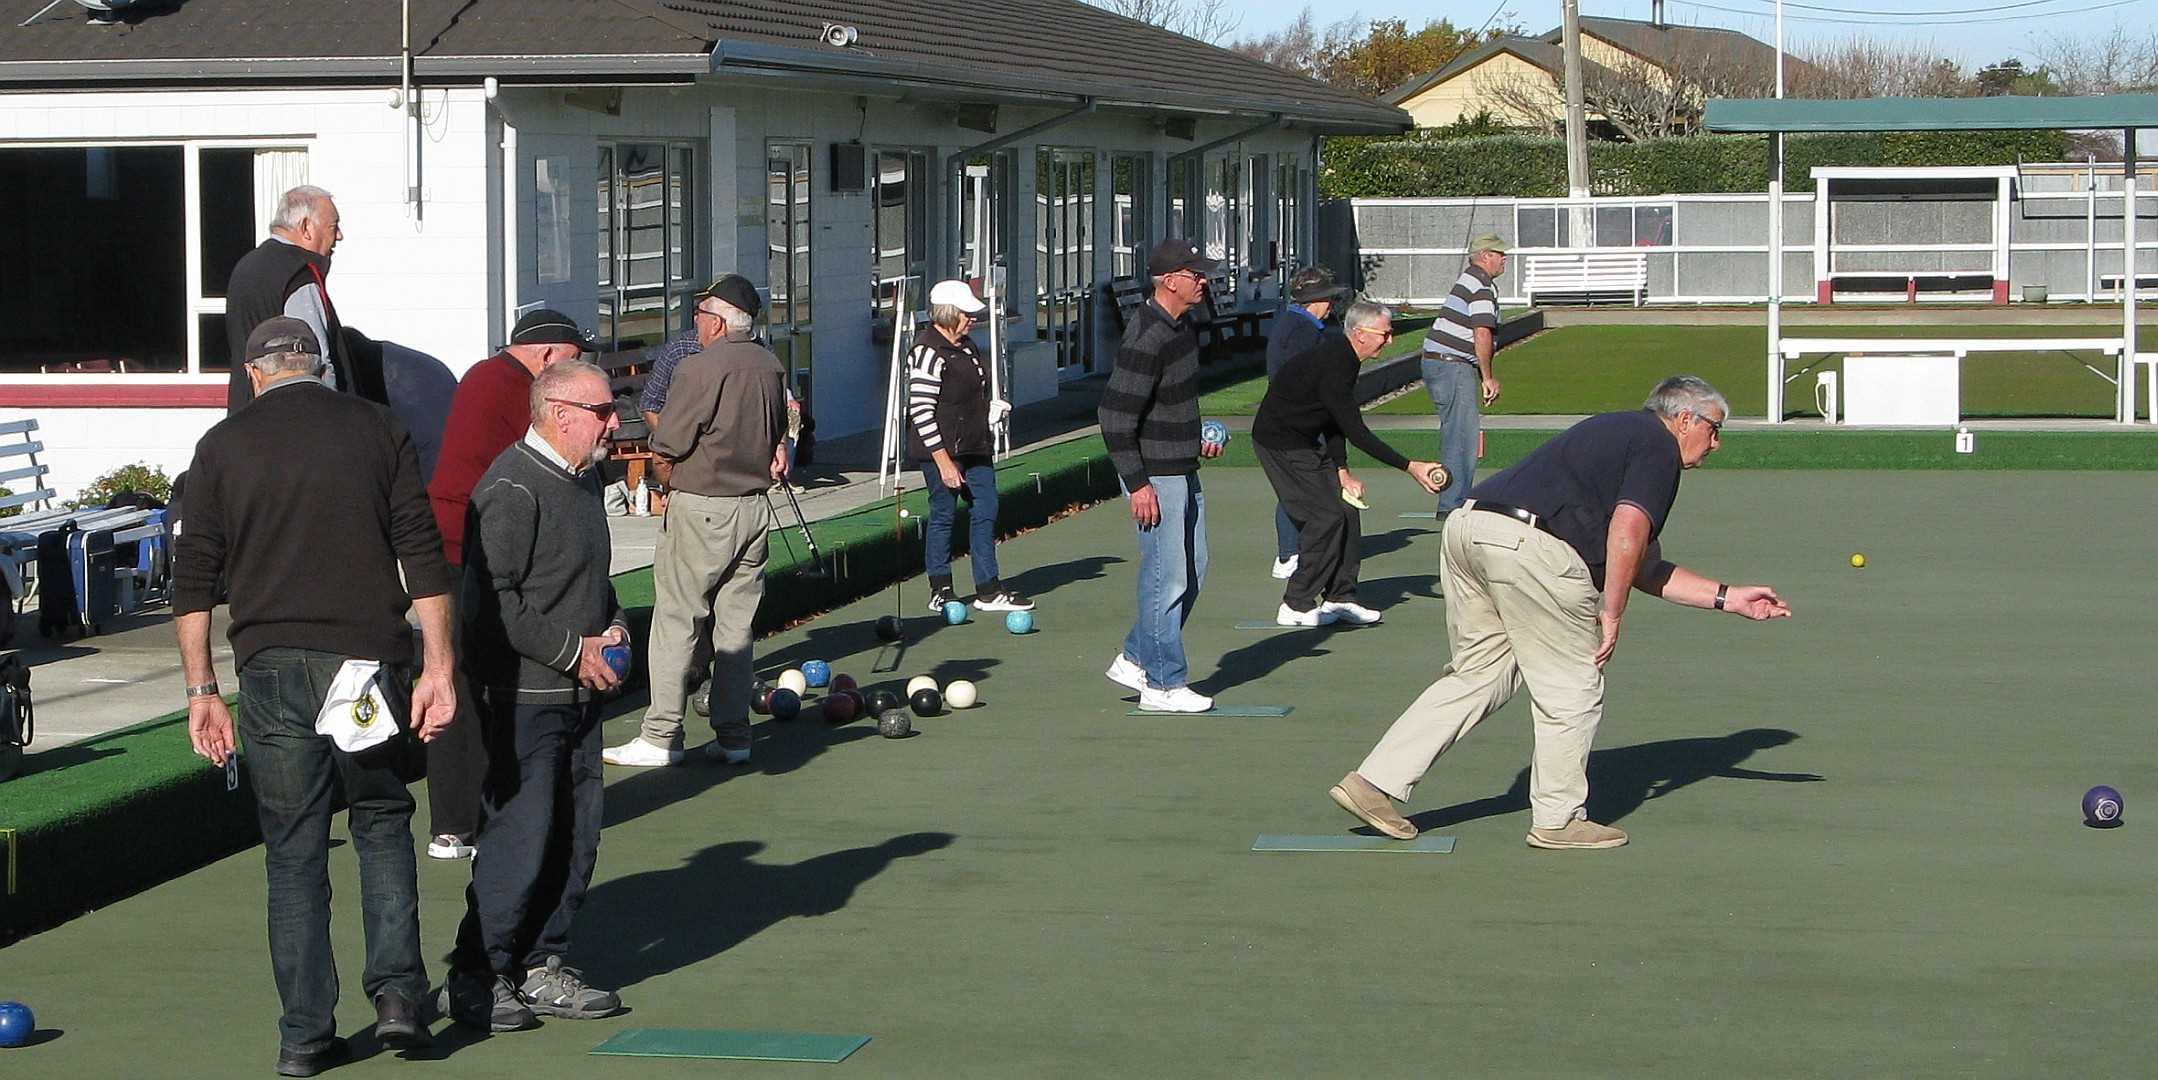 Winter Roll-up with 34 Bowlers - 10 June 21